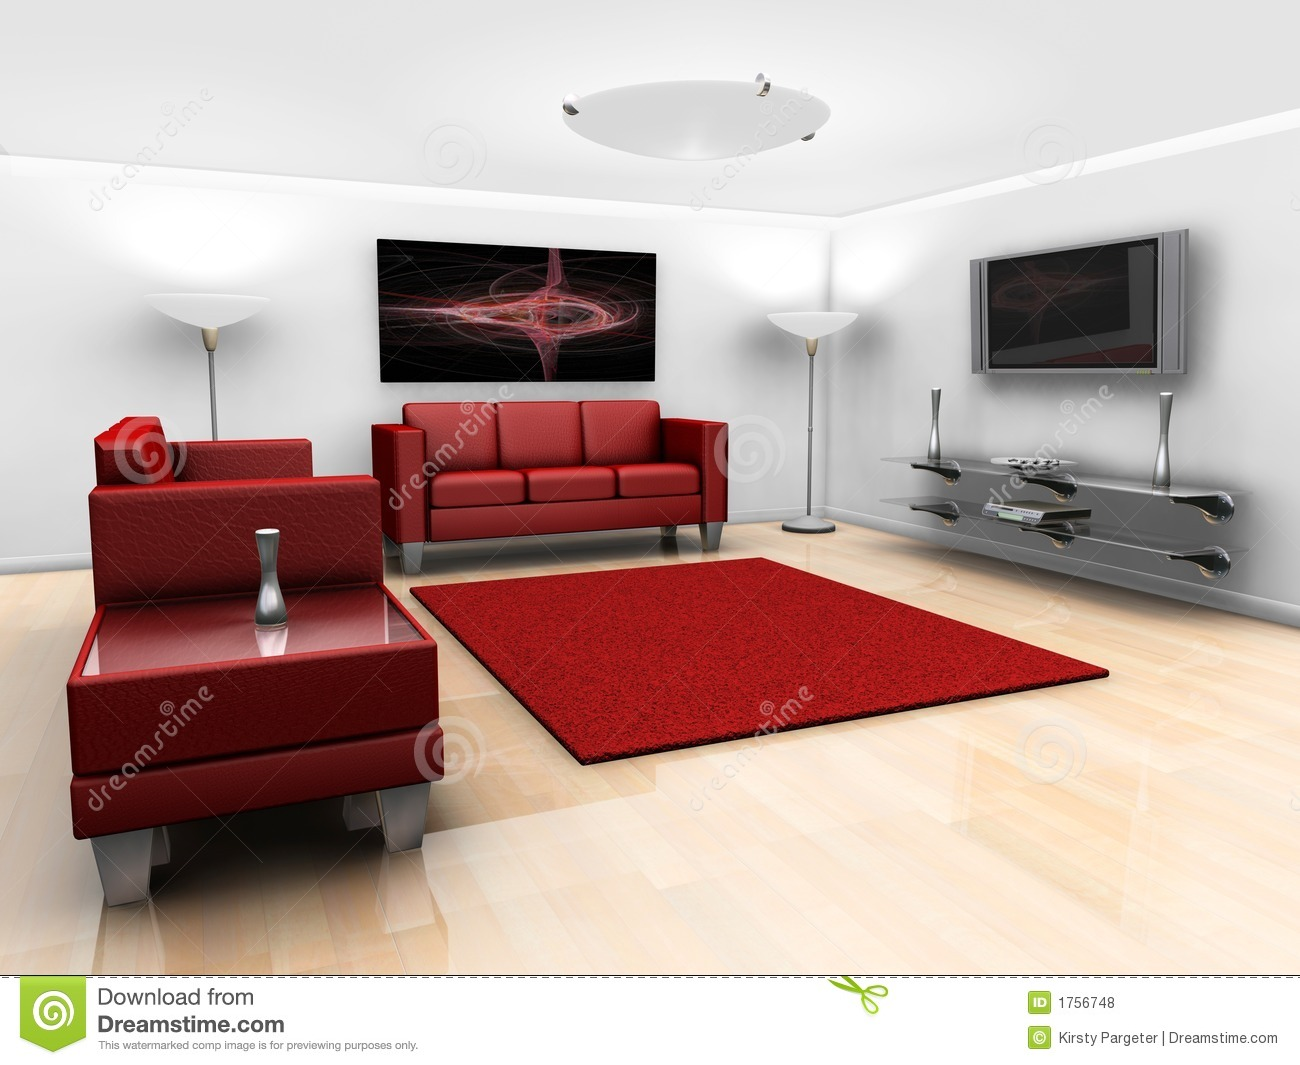 Contemporary Lounge Royalty Free Stock Photos - Image: 1756748